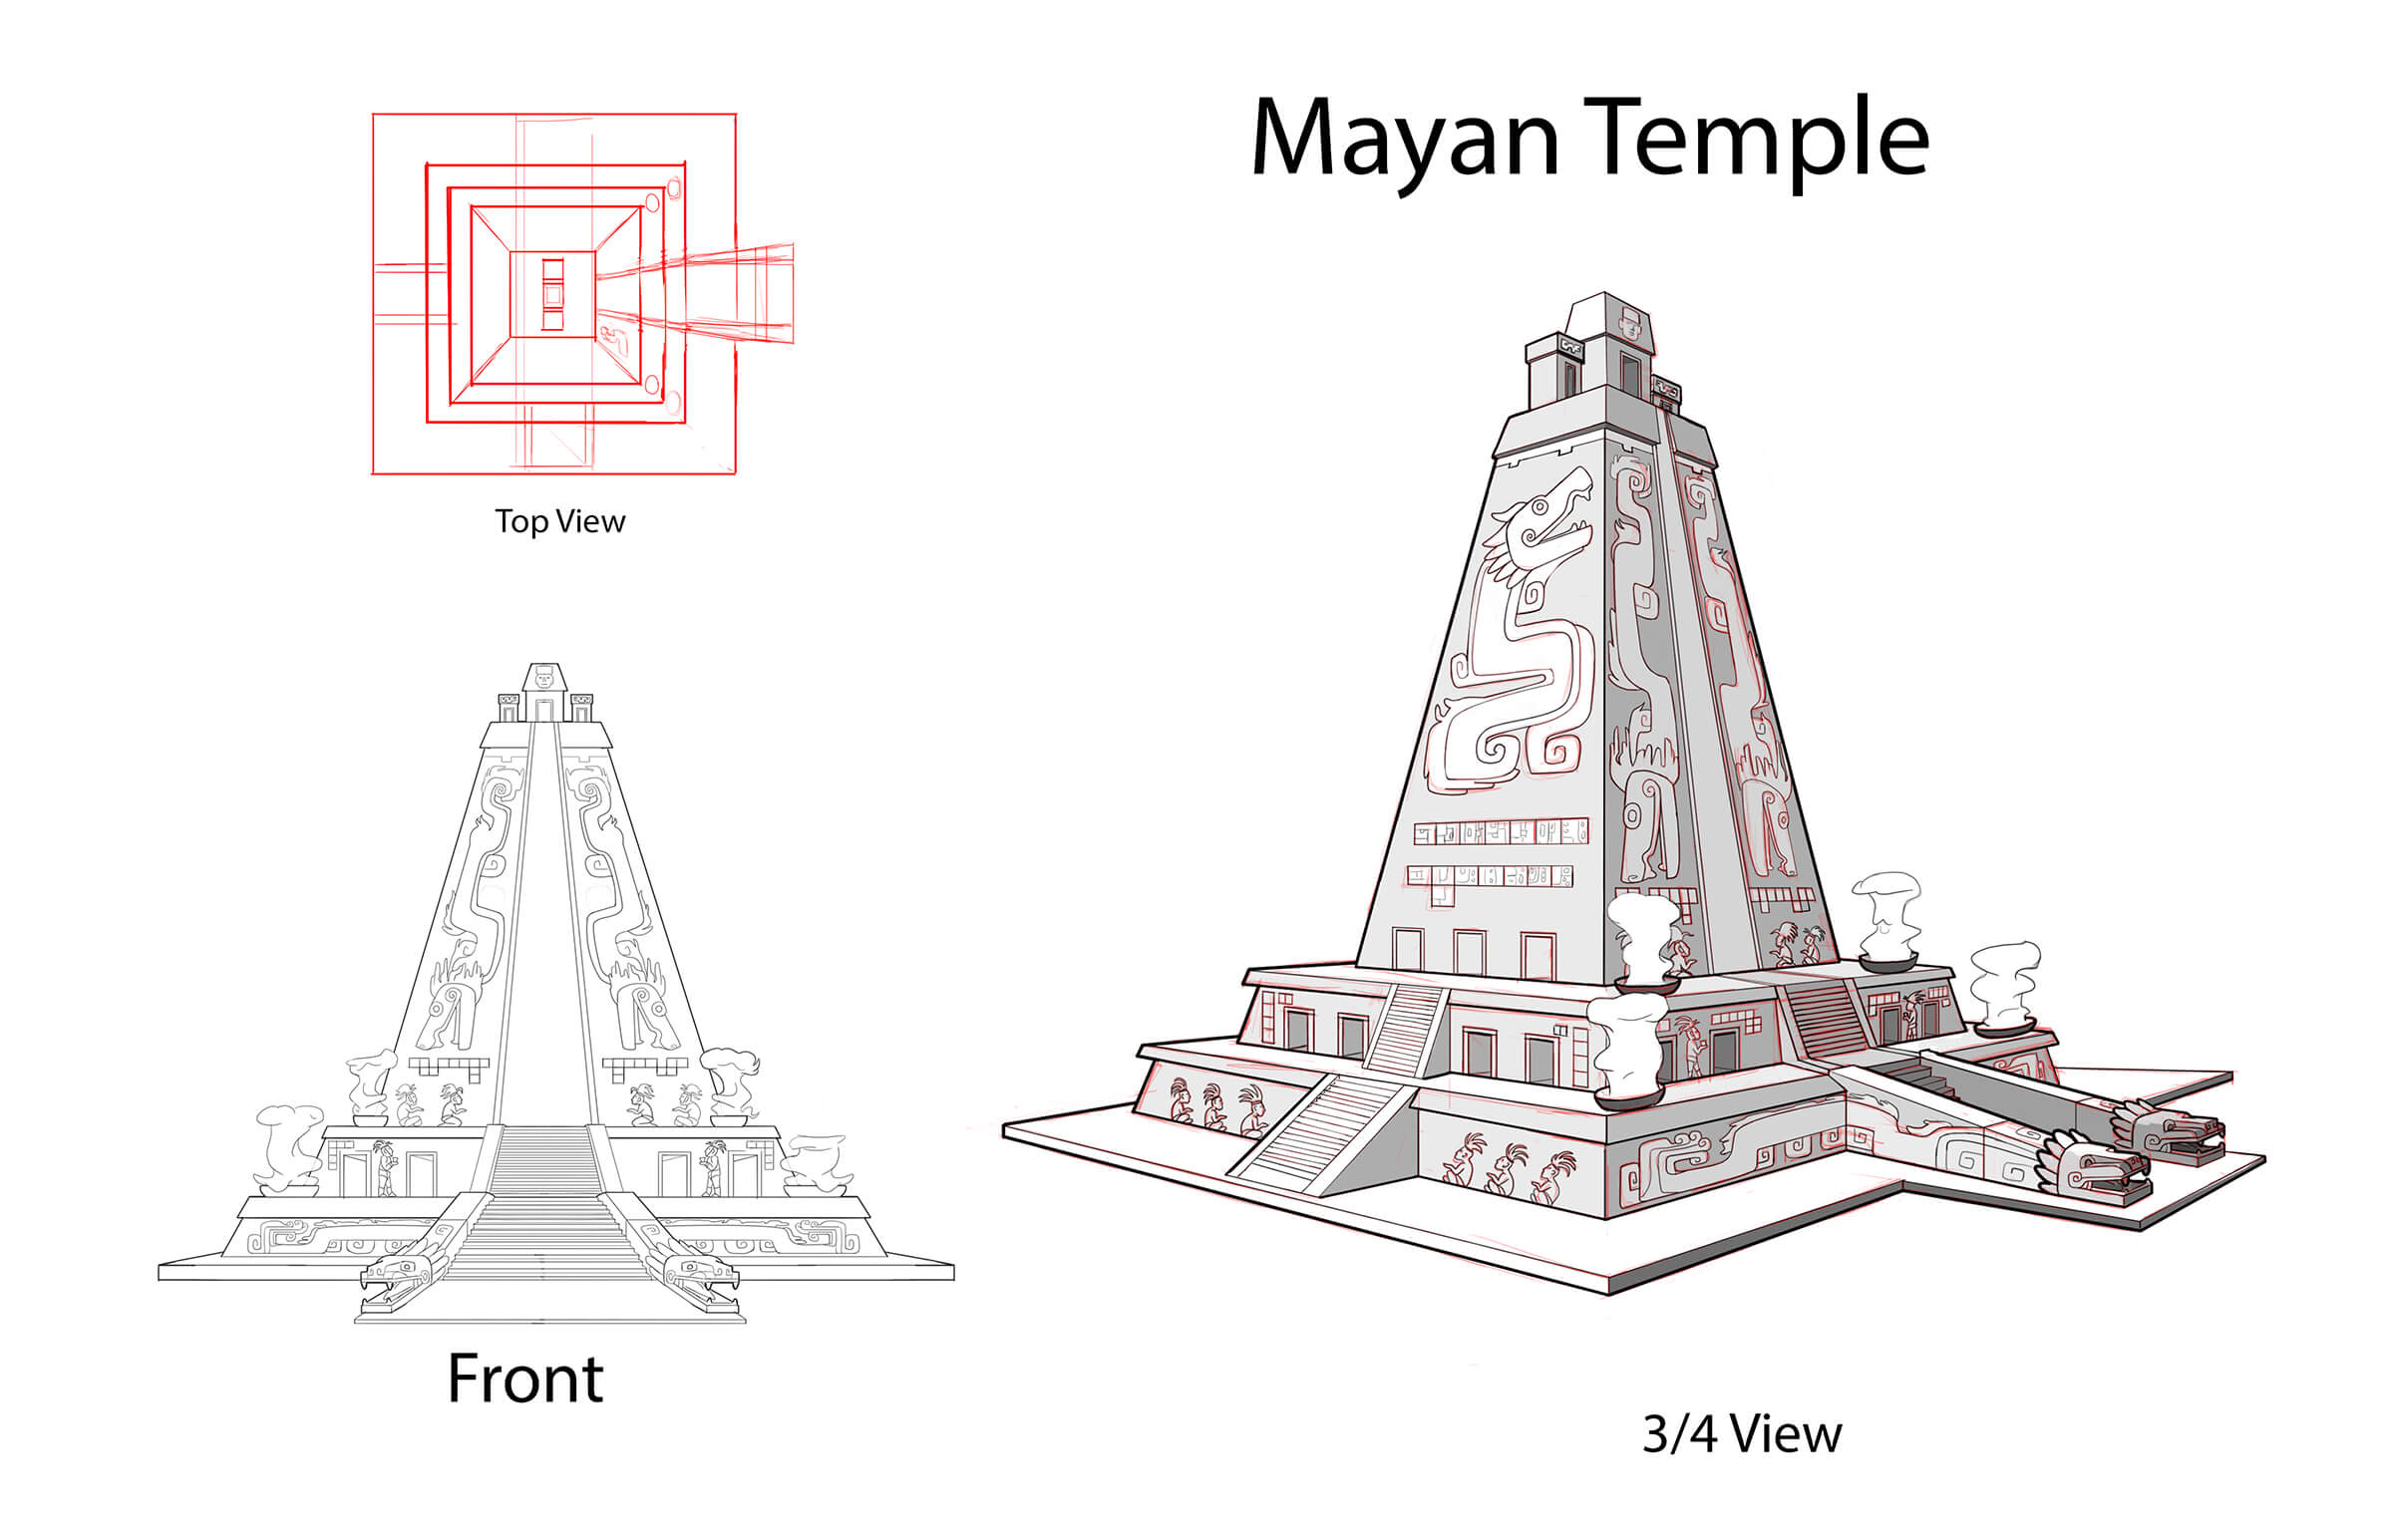 Multiple sketched views of a Mayan temple